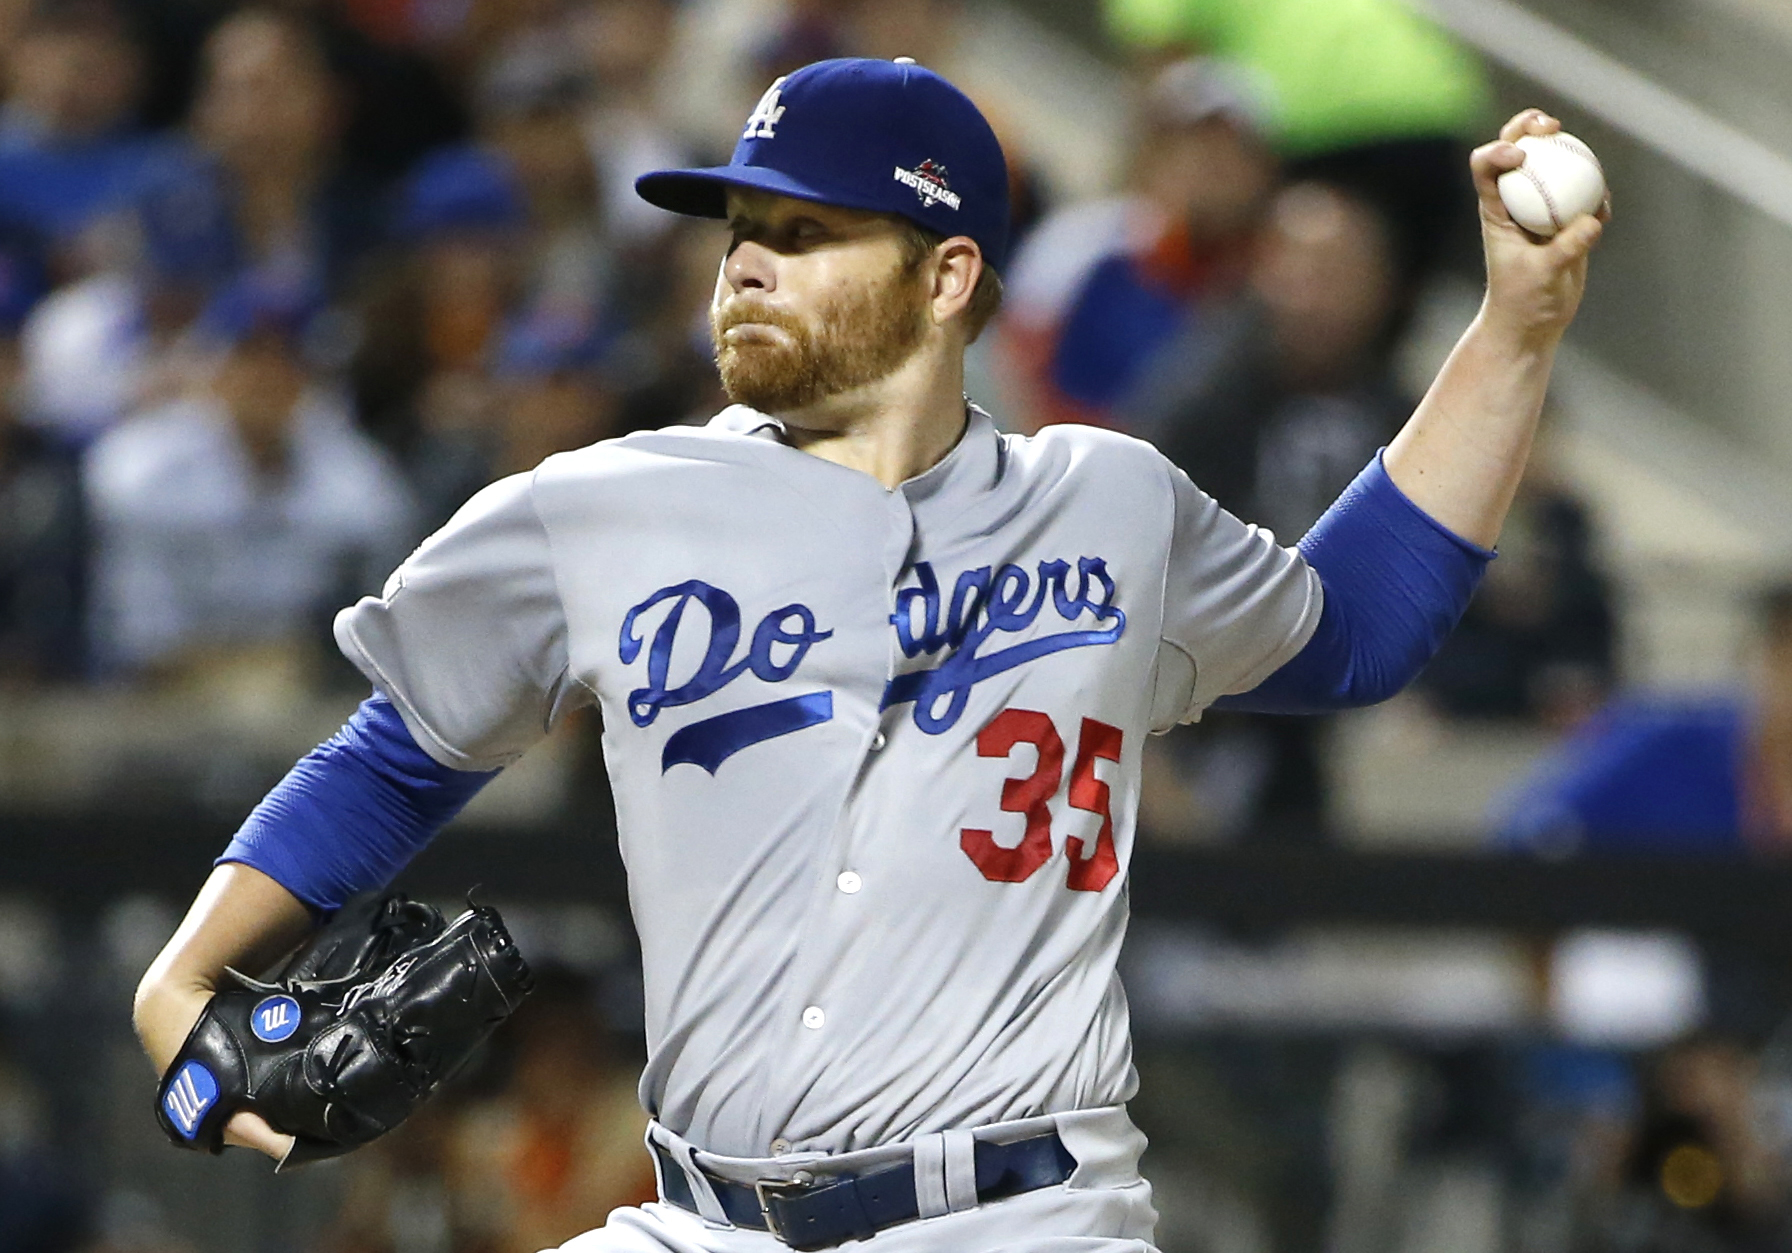 FILE - In this Oct. 12, 2015, file photo, Los Angeles Dodgers starting pitcher Brett Anderson delivers in the first inning during baseball's Game 3 of the National League Division Series against the New York Mets in New York. Anderson, Houston outfielder